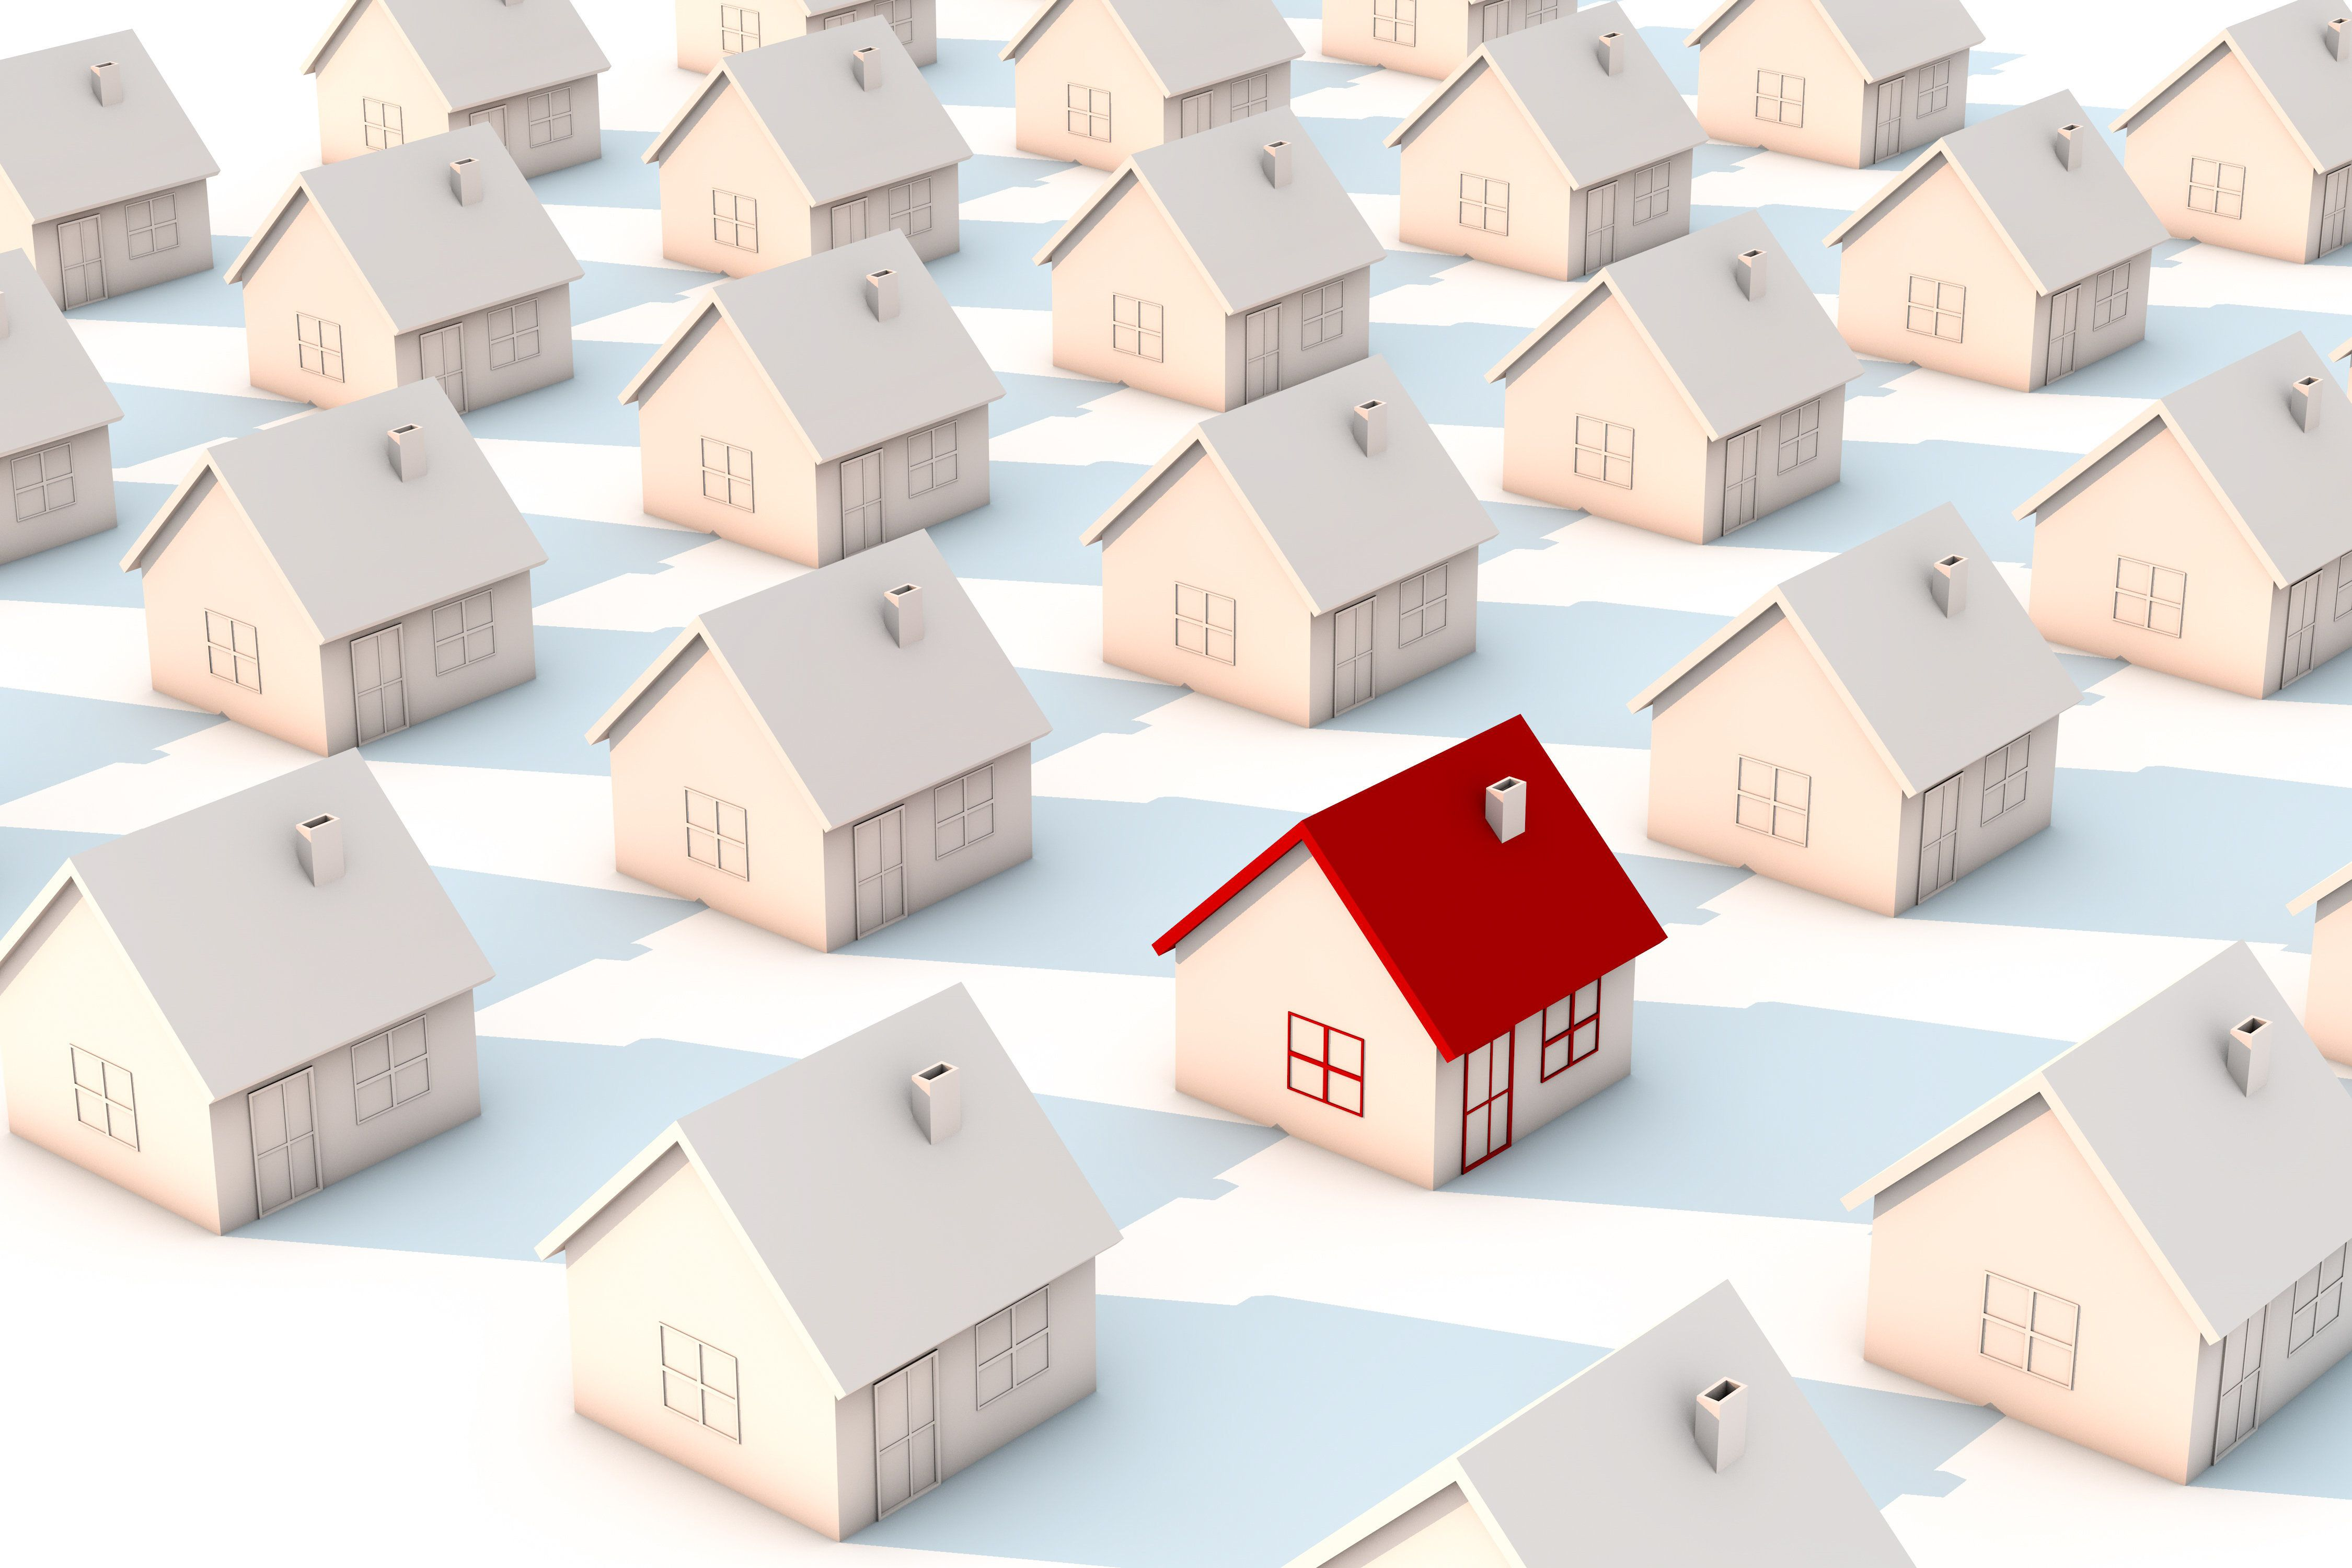 3d illustration red house in group white houses on white backgrounds